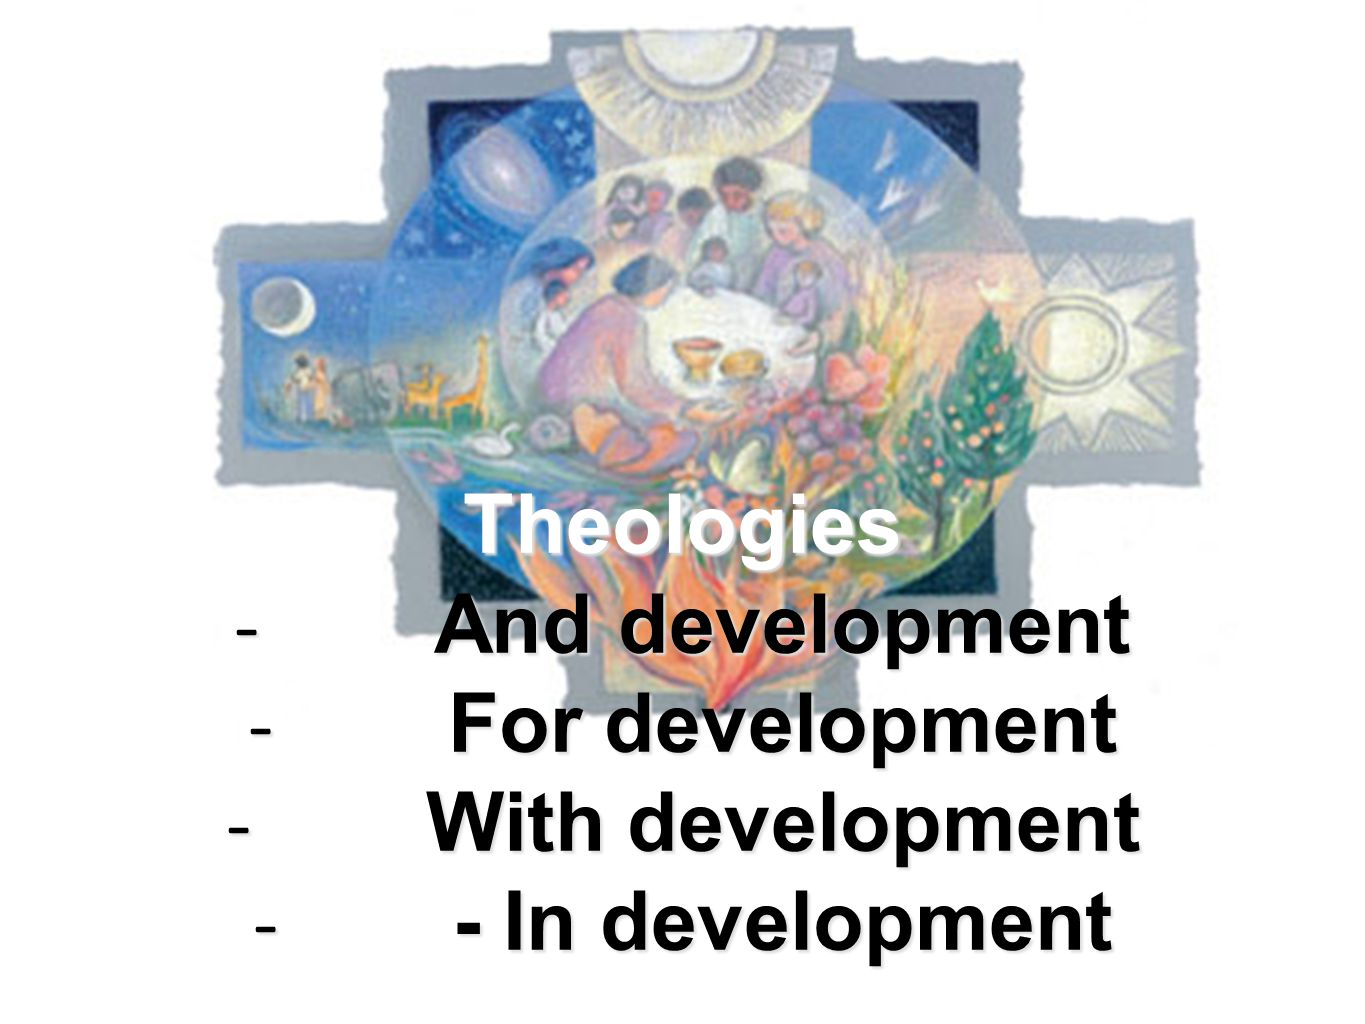 Theologies - And development - For development - With development - - In development